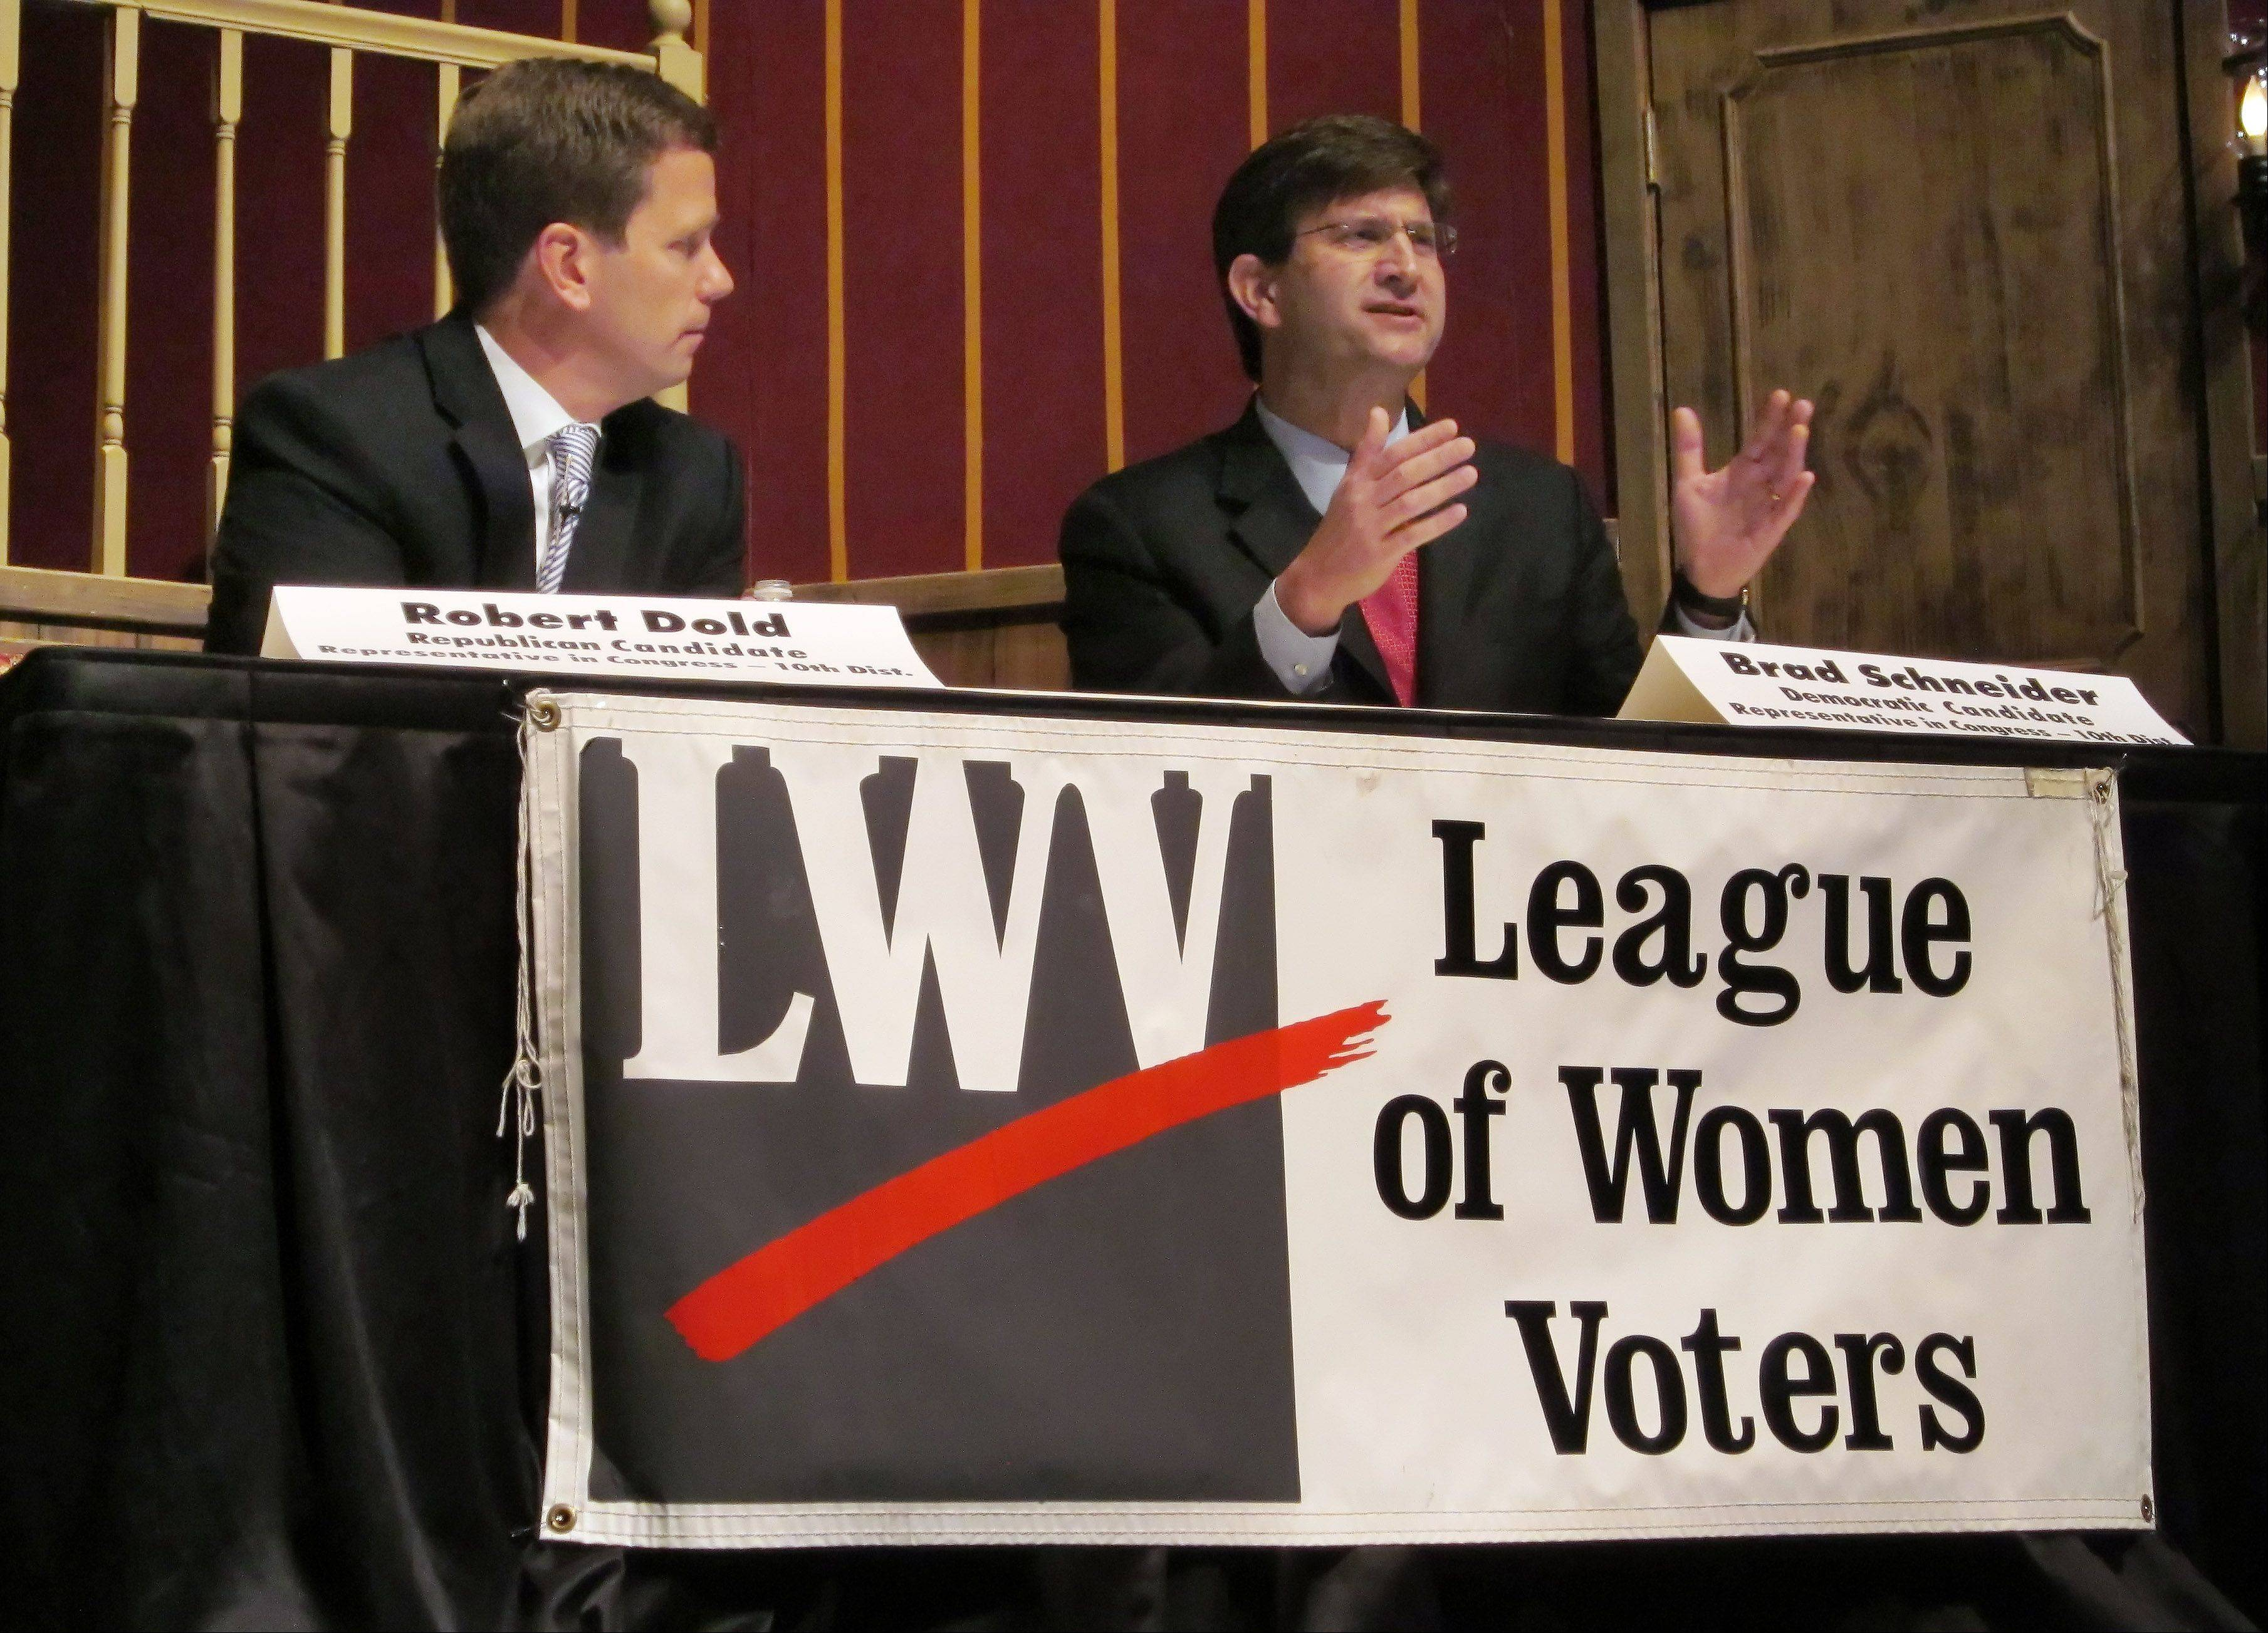 Candidates for the 10th Congressional district, incumbent Republican Robert Dold, left, and Democratic challenger Brad Schneider, right, debated Sunday at Lake Forest High School in a forum organized by three chapters of the League of Women Voters.